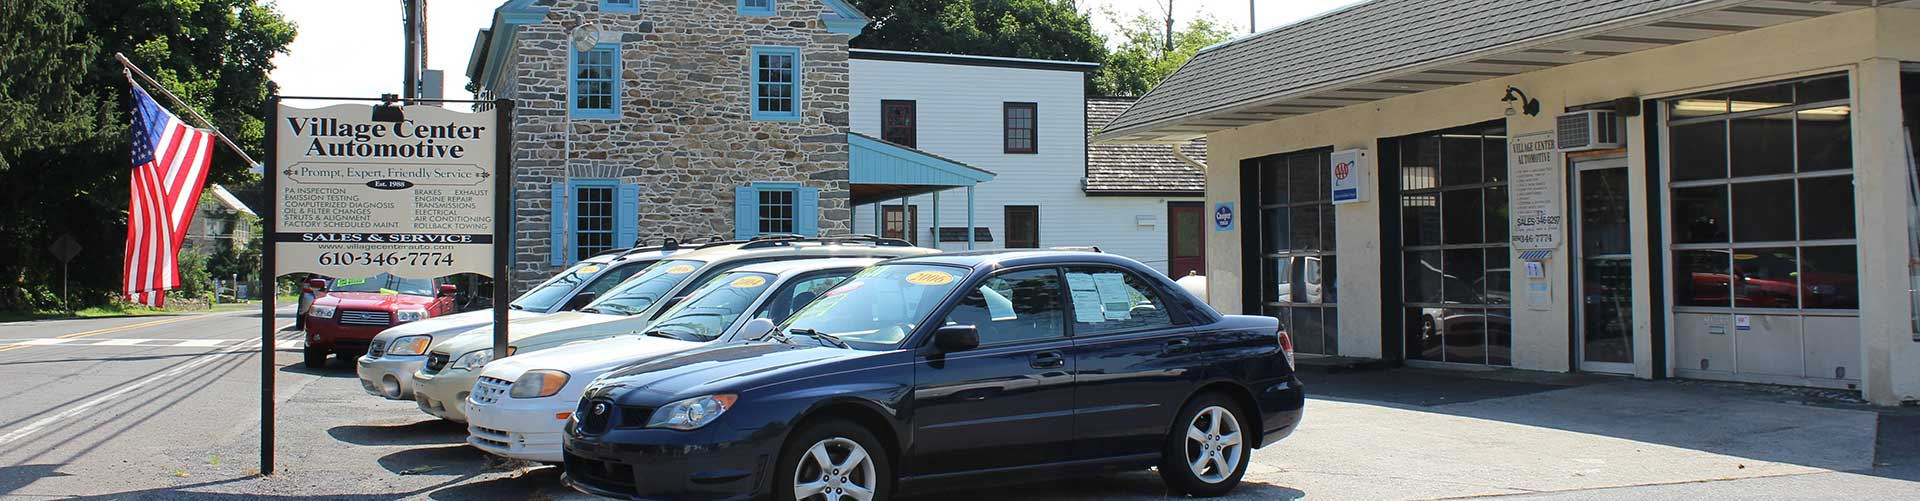 Village Center Automotive